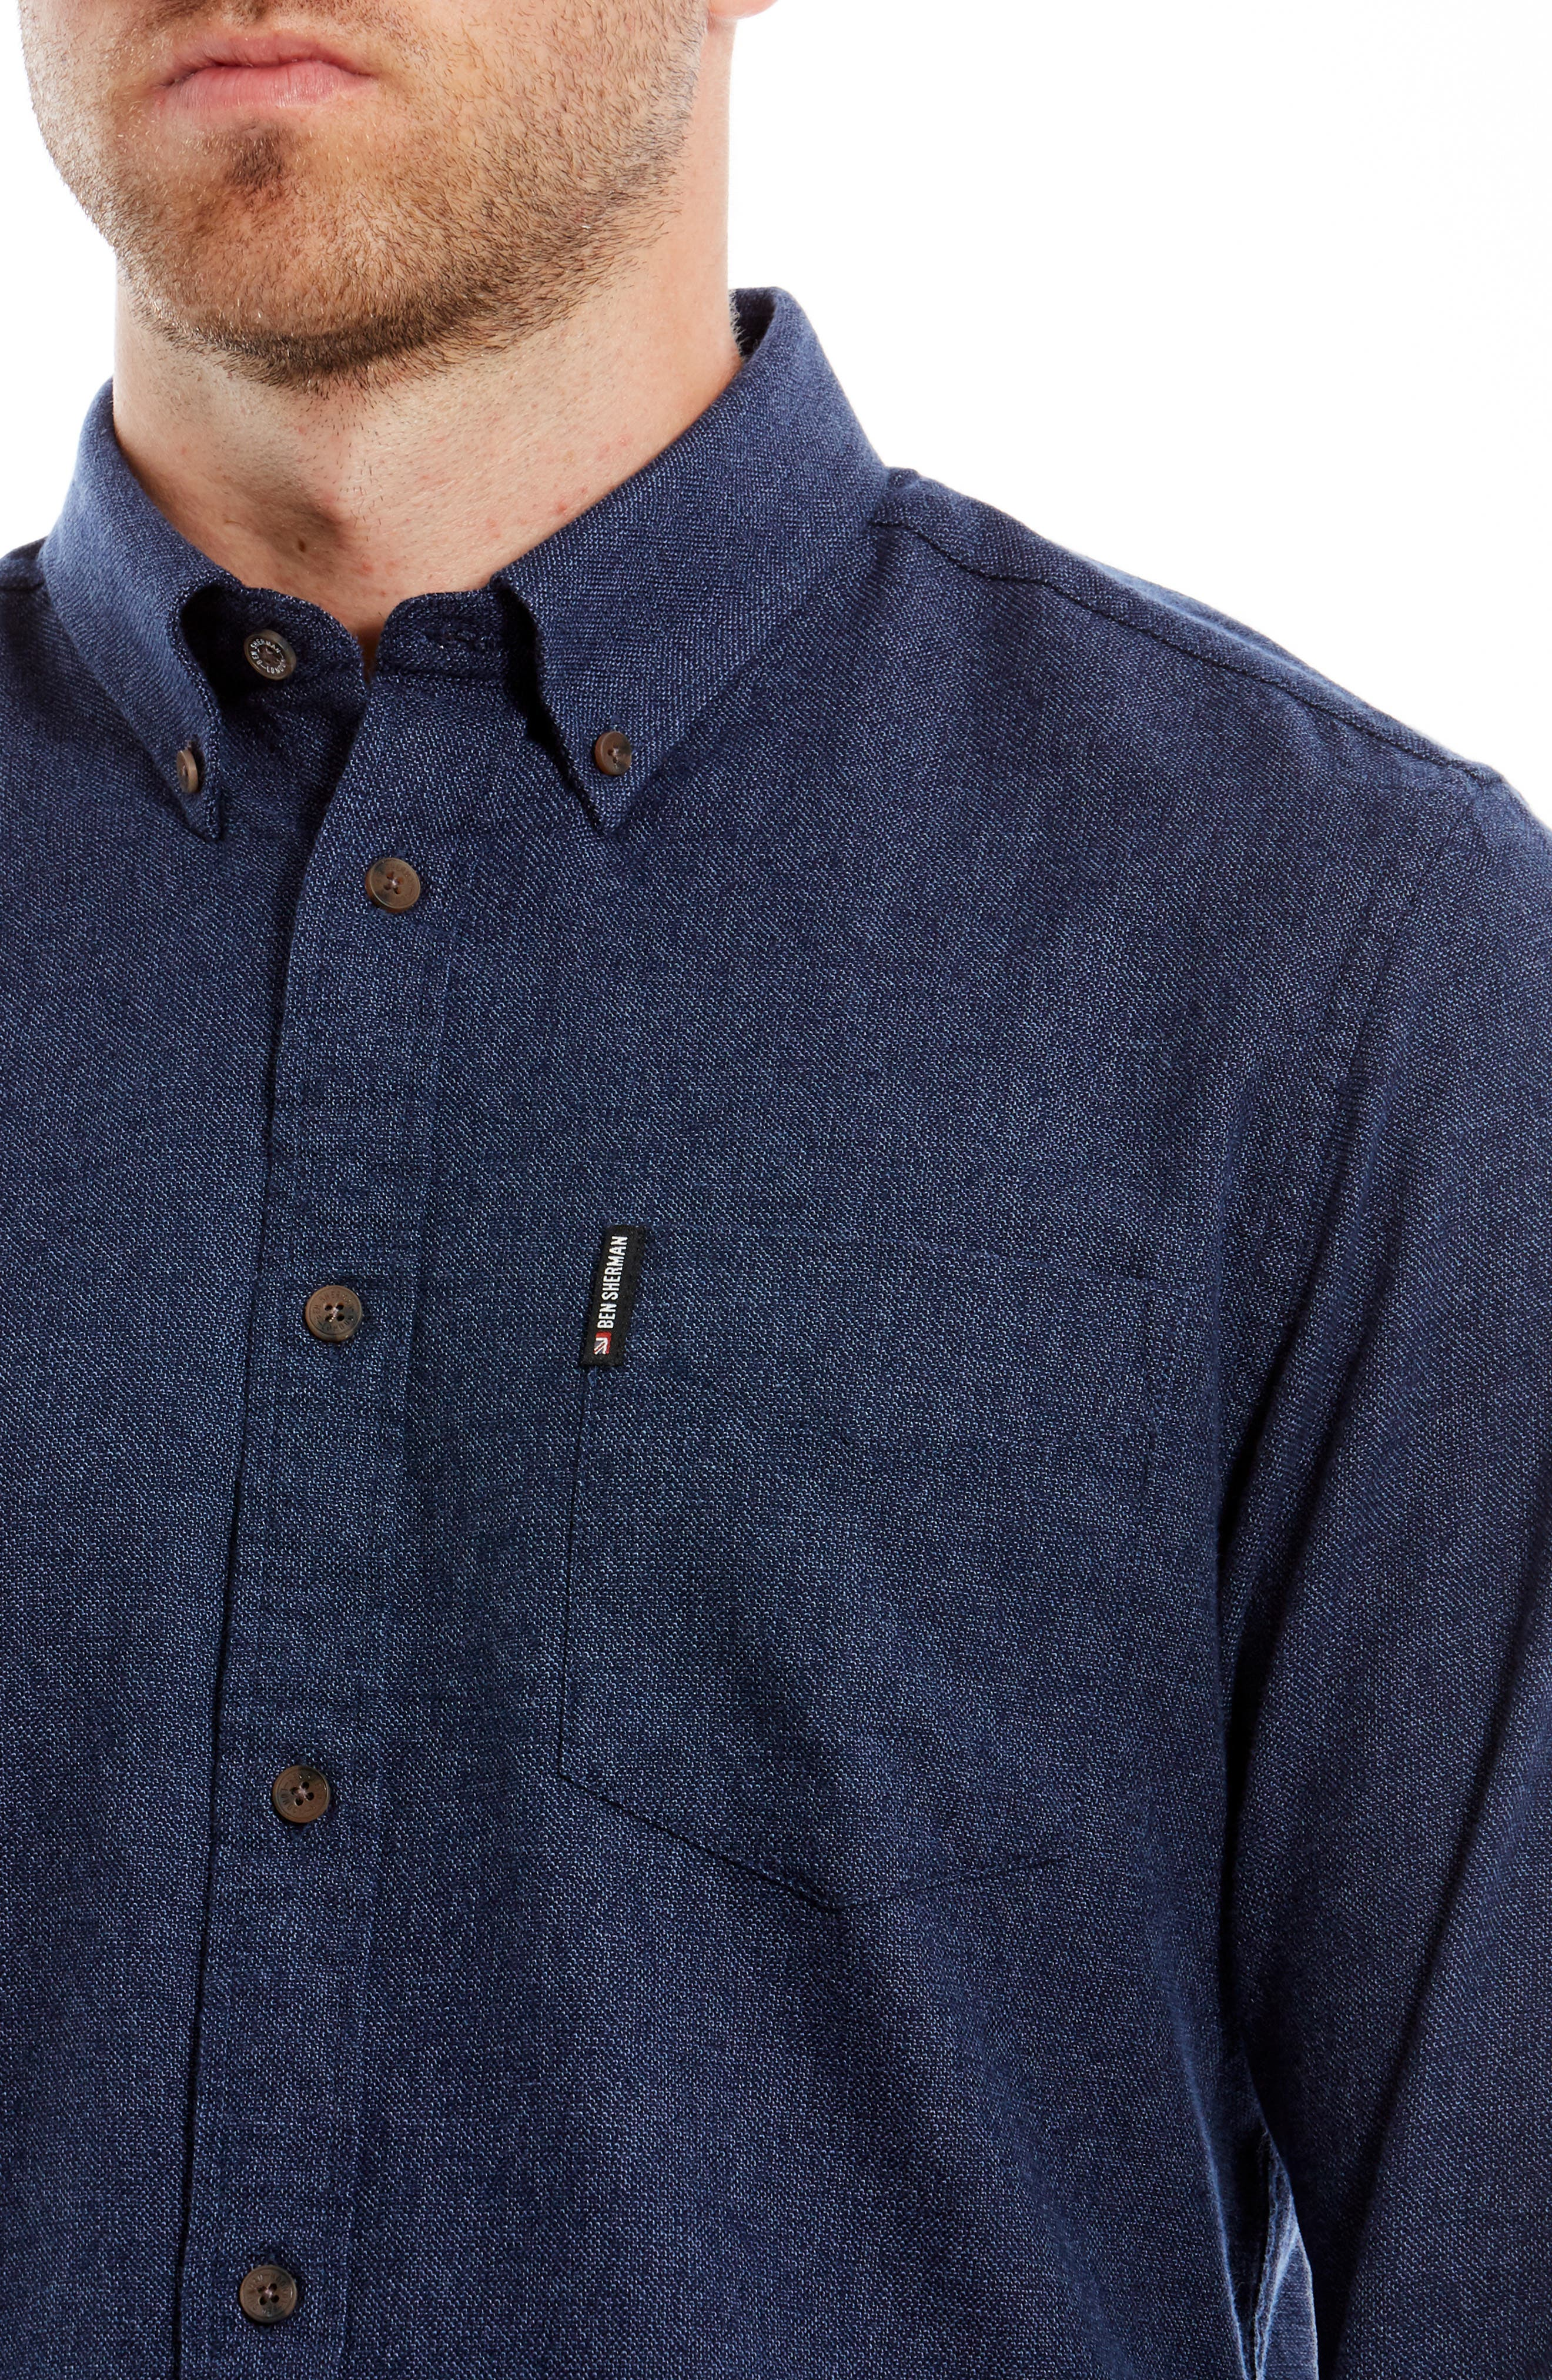 Twisted Brushed Trim Fit Sport Shirt,                             Alternate thumbnail 2, color,                             400